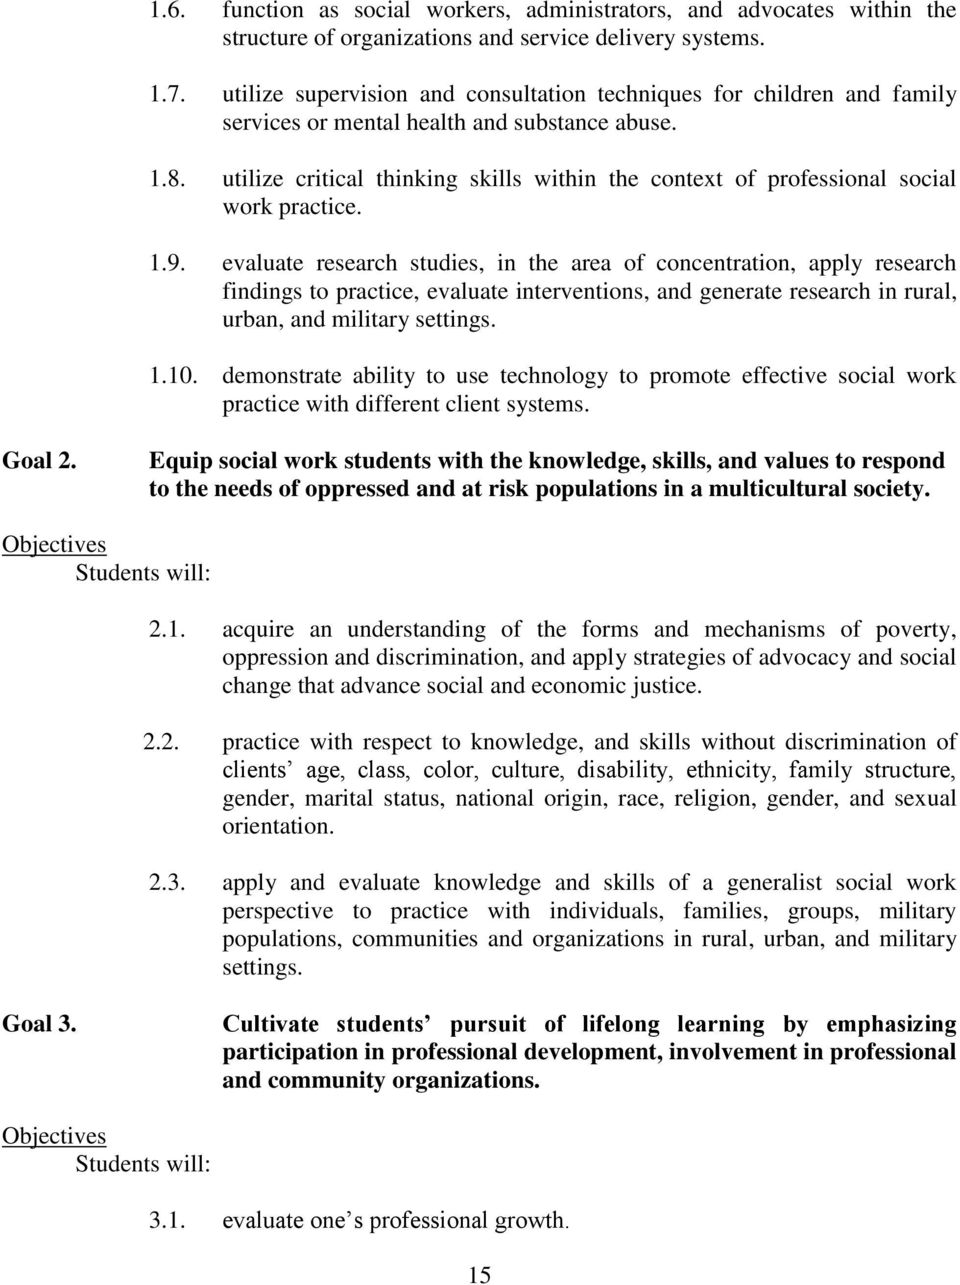 fayetteville state university master of social work program utilize critical thinking skills in the context of professional social work practice 1 9